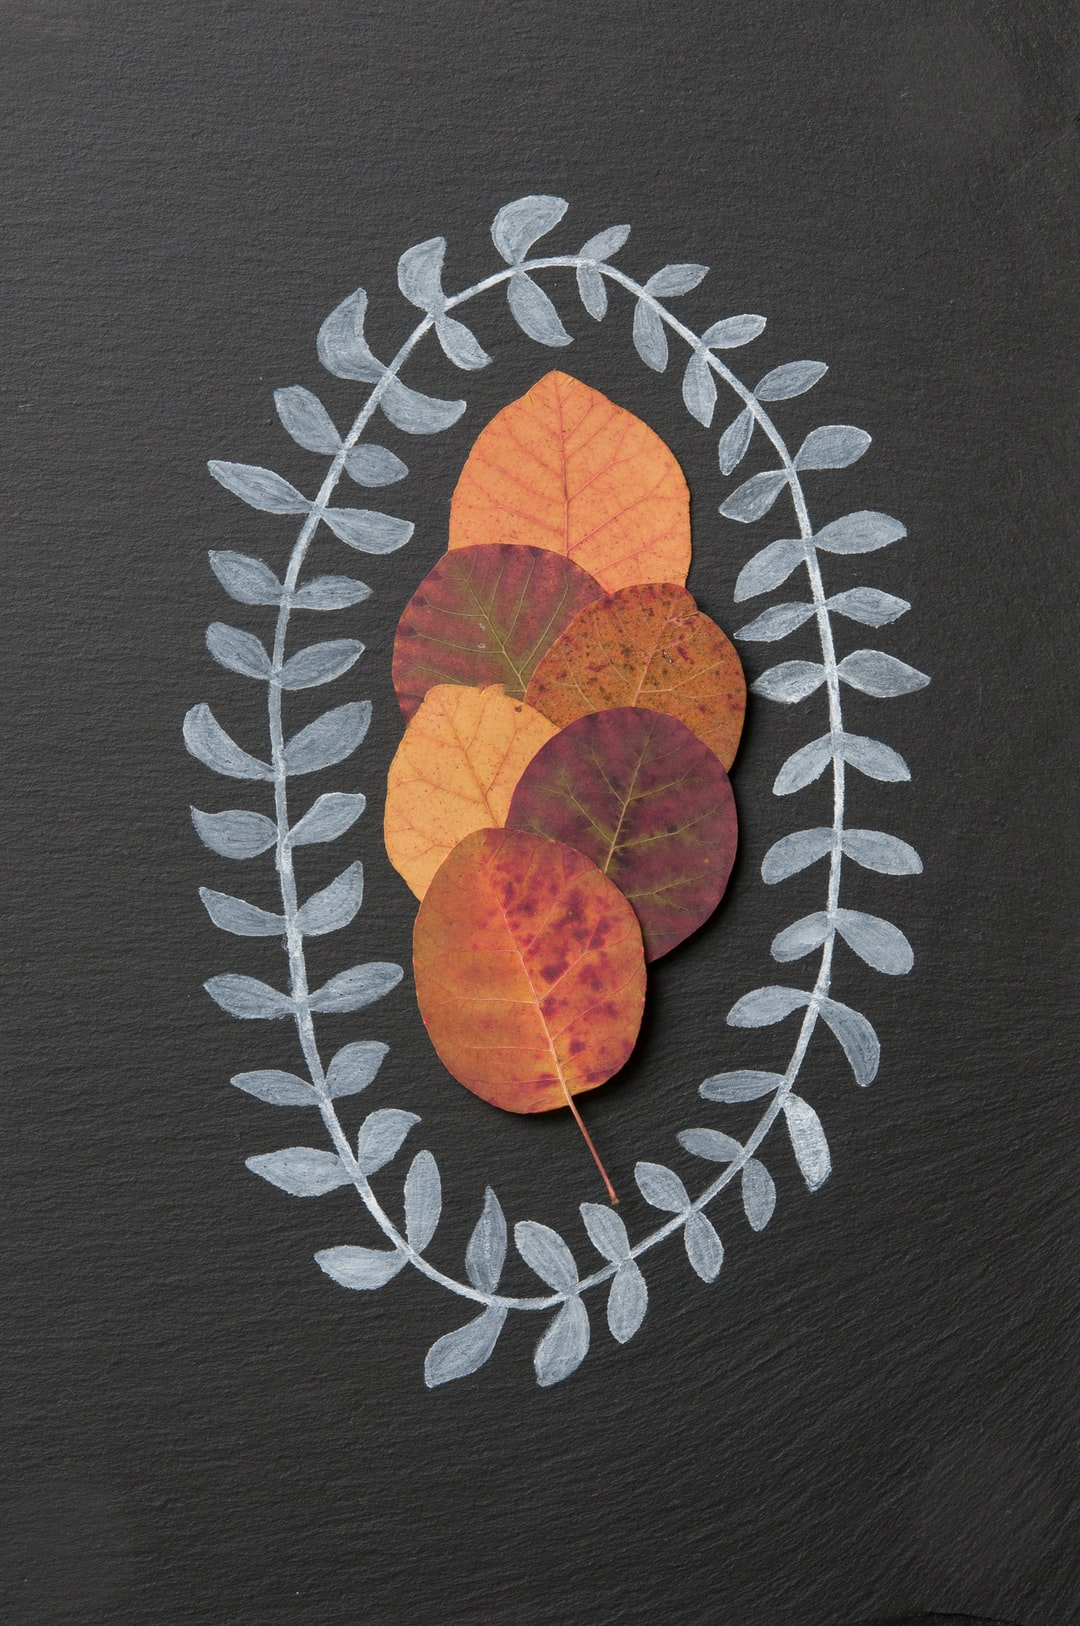 I created this still life with a hand drawn garland surrounding some autumn leaves with the idea that it could be downloaded and printed as a Christmas greeting card.